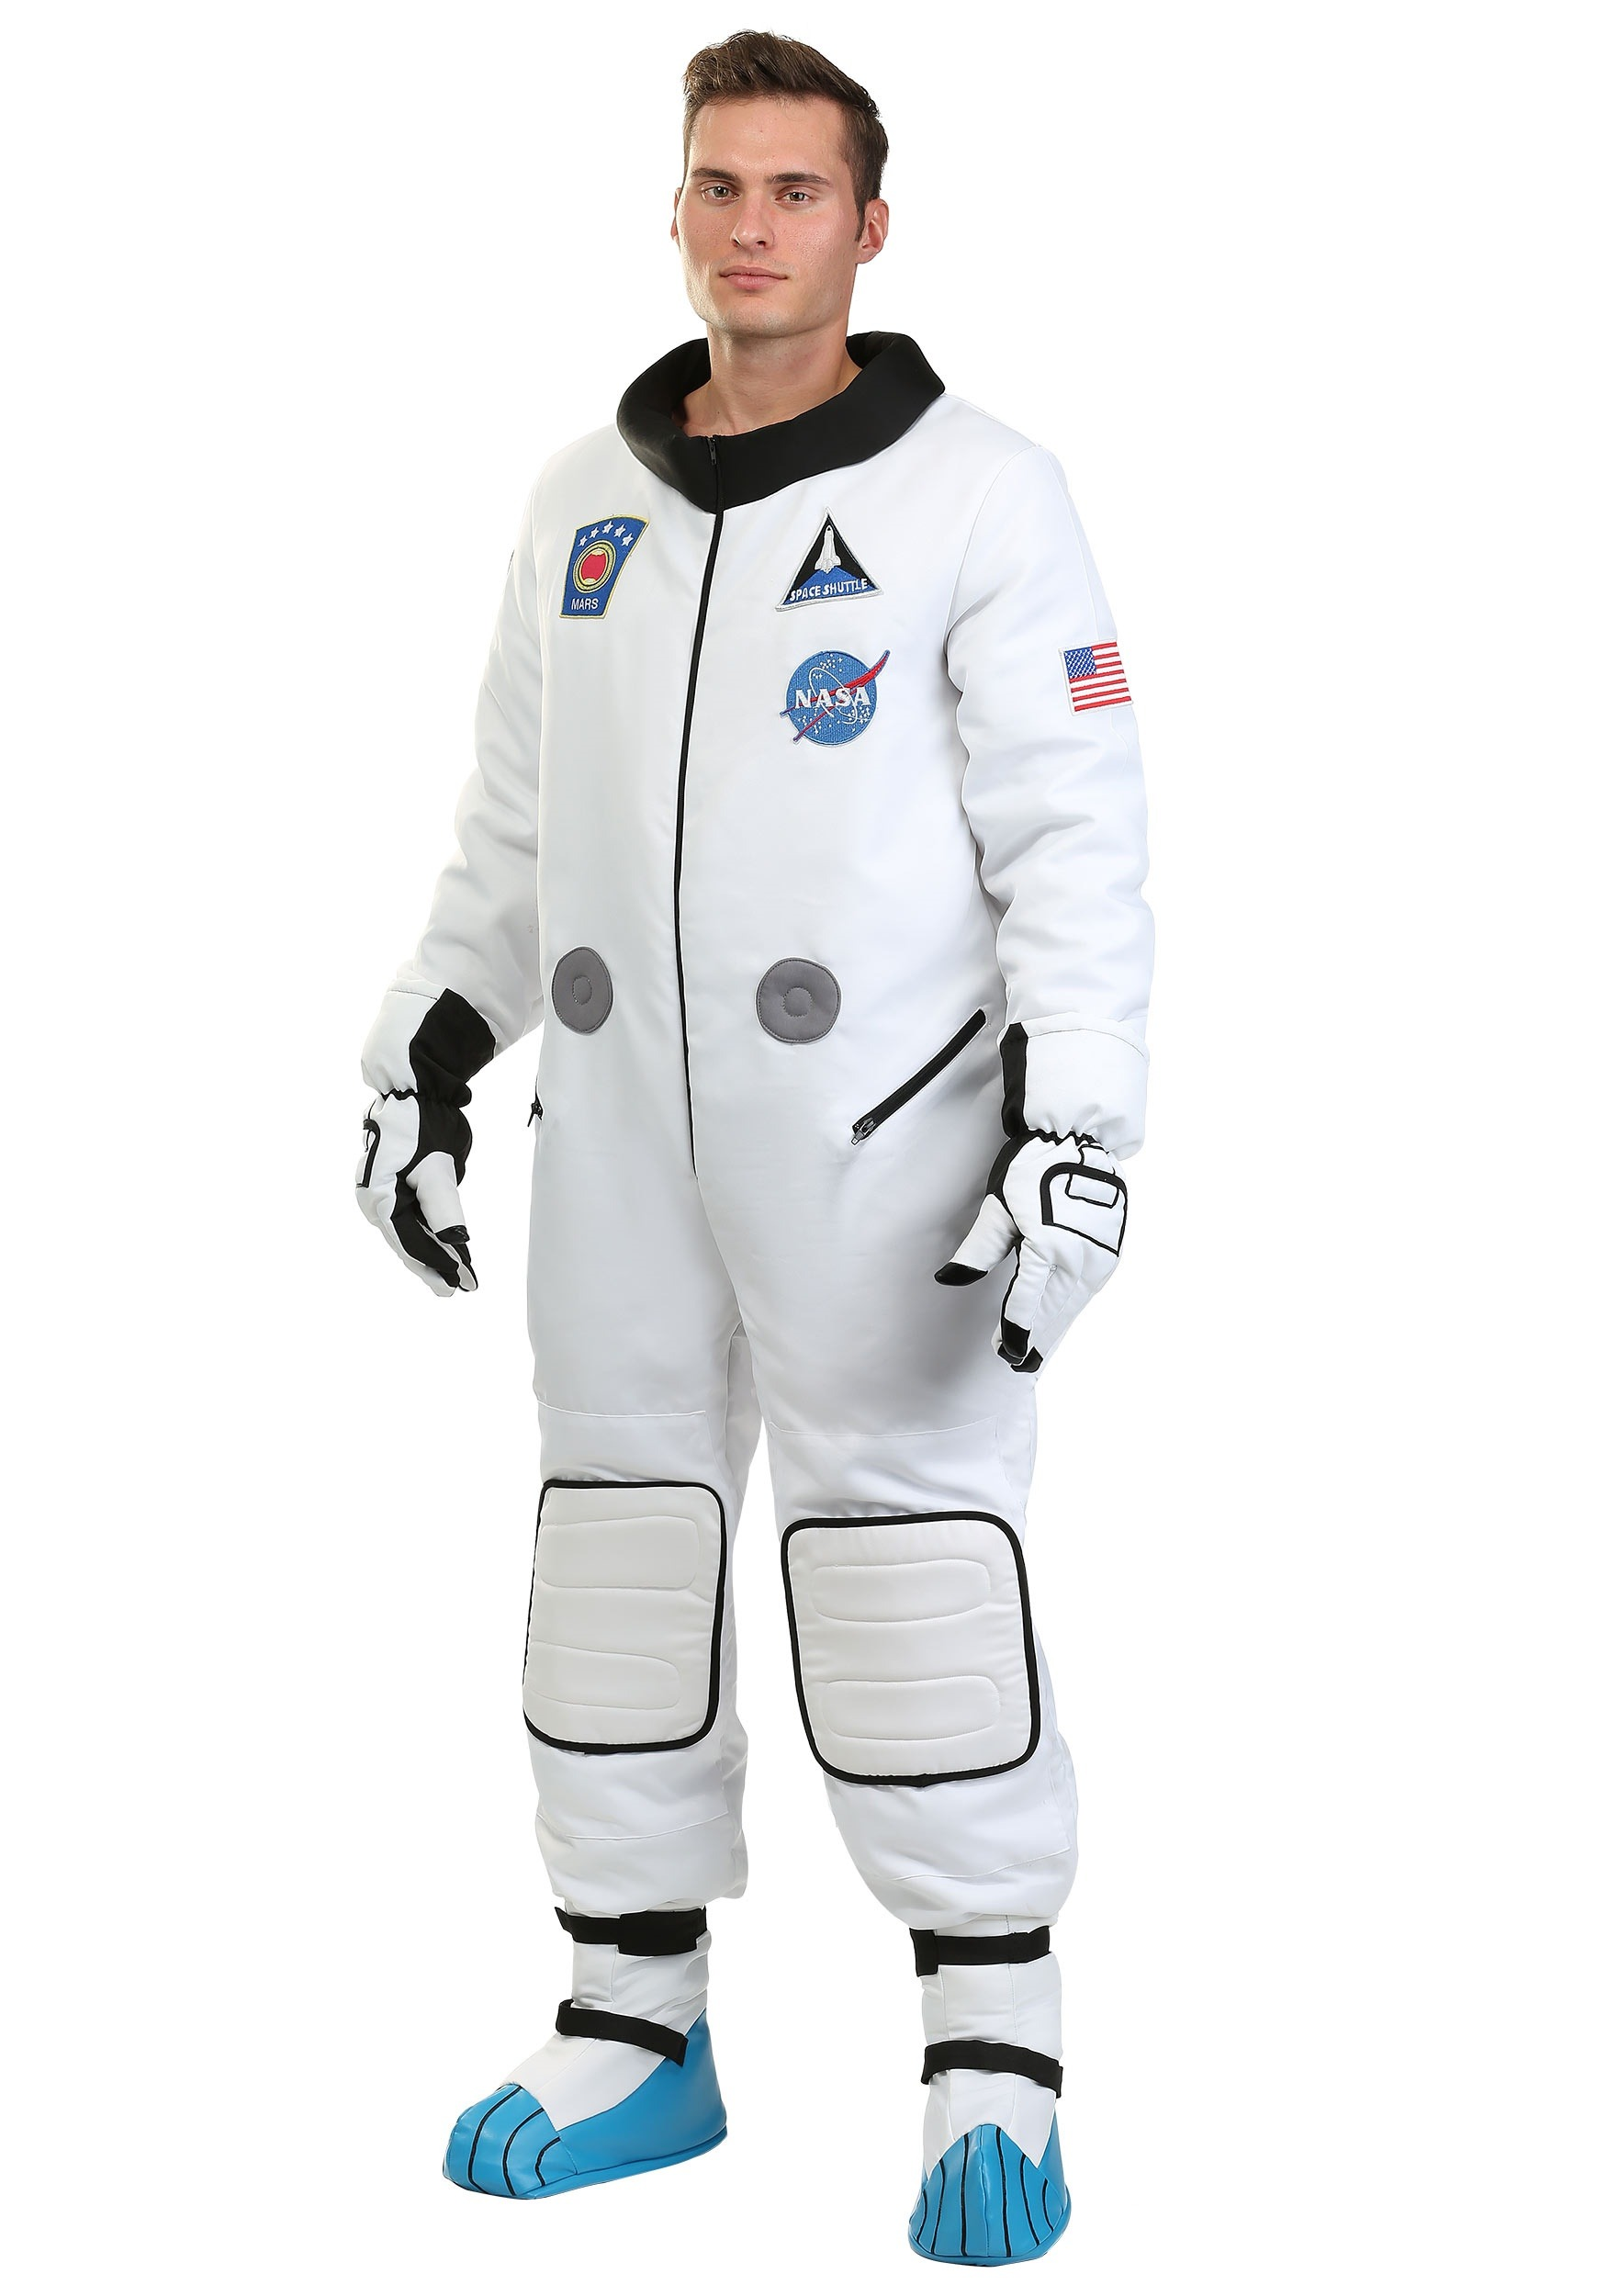 Deluxe Astronaut Costume for Plus Size Men 2X